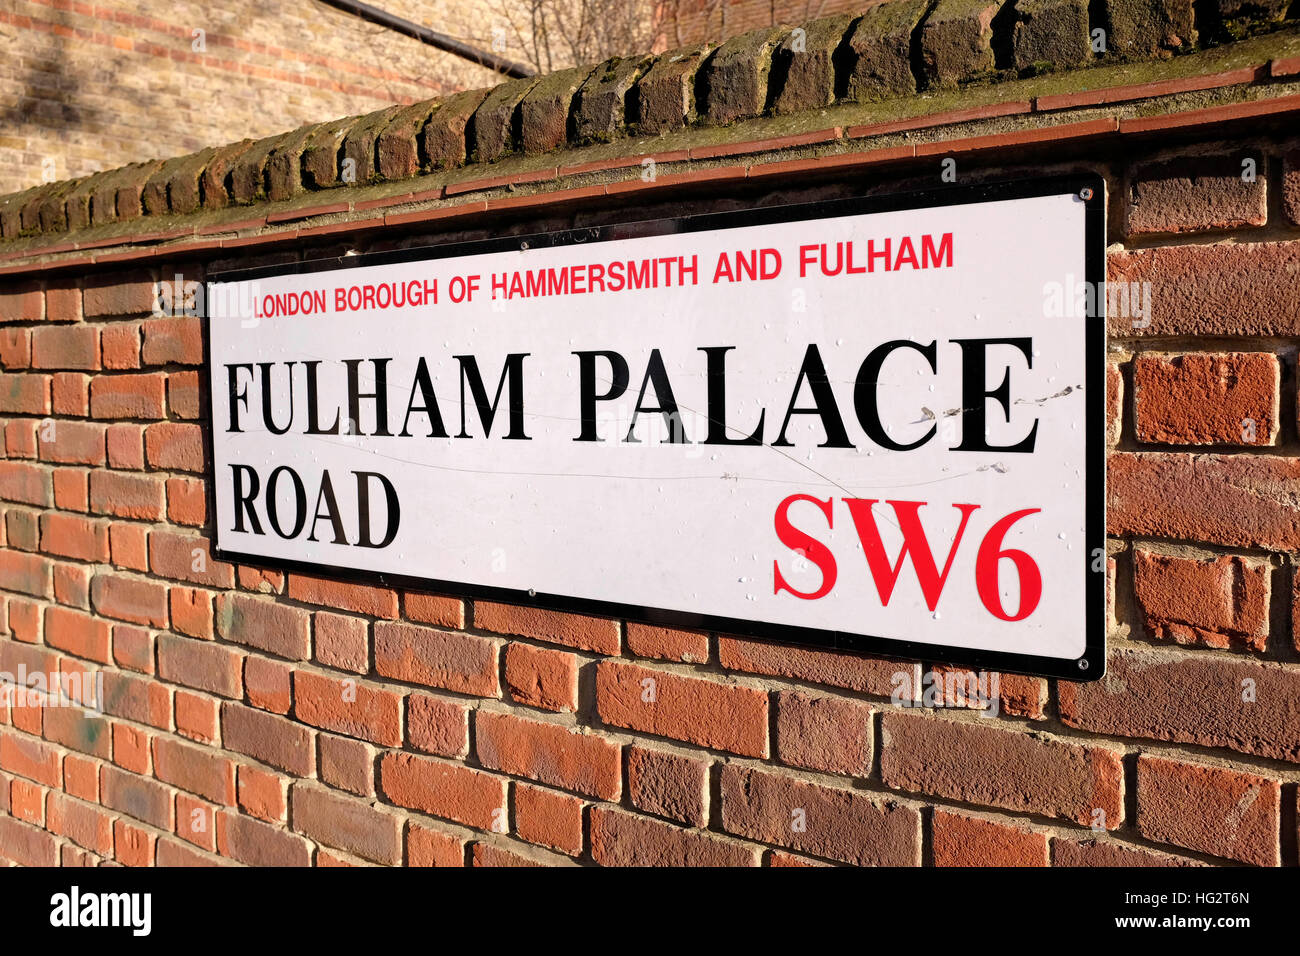 Borough of Hammersmith and Fulham in West London - Fulham Palace Road sign - Stock Image